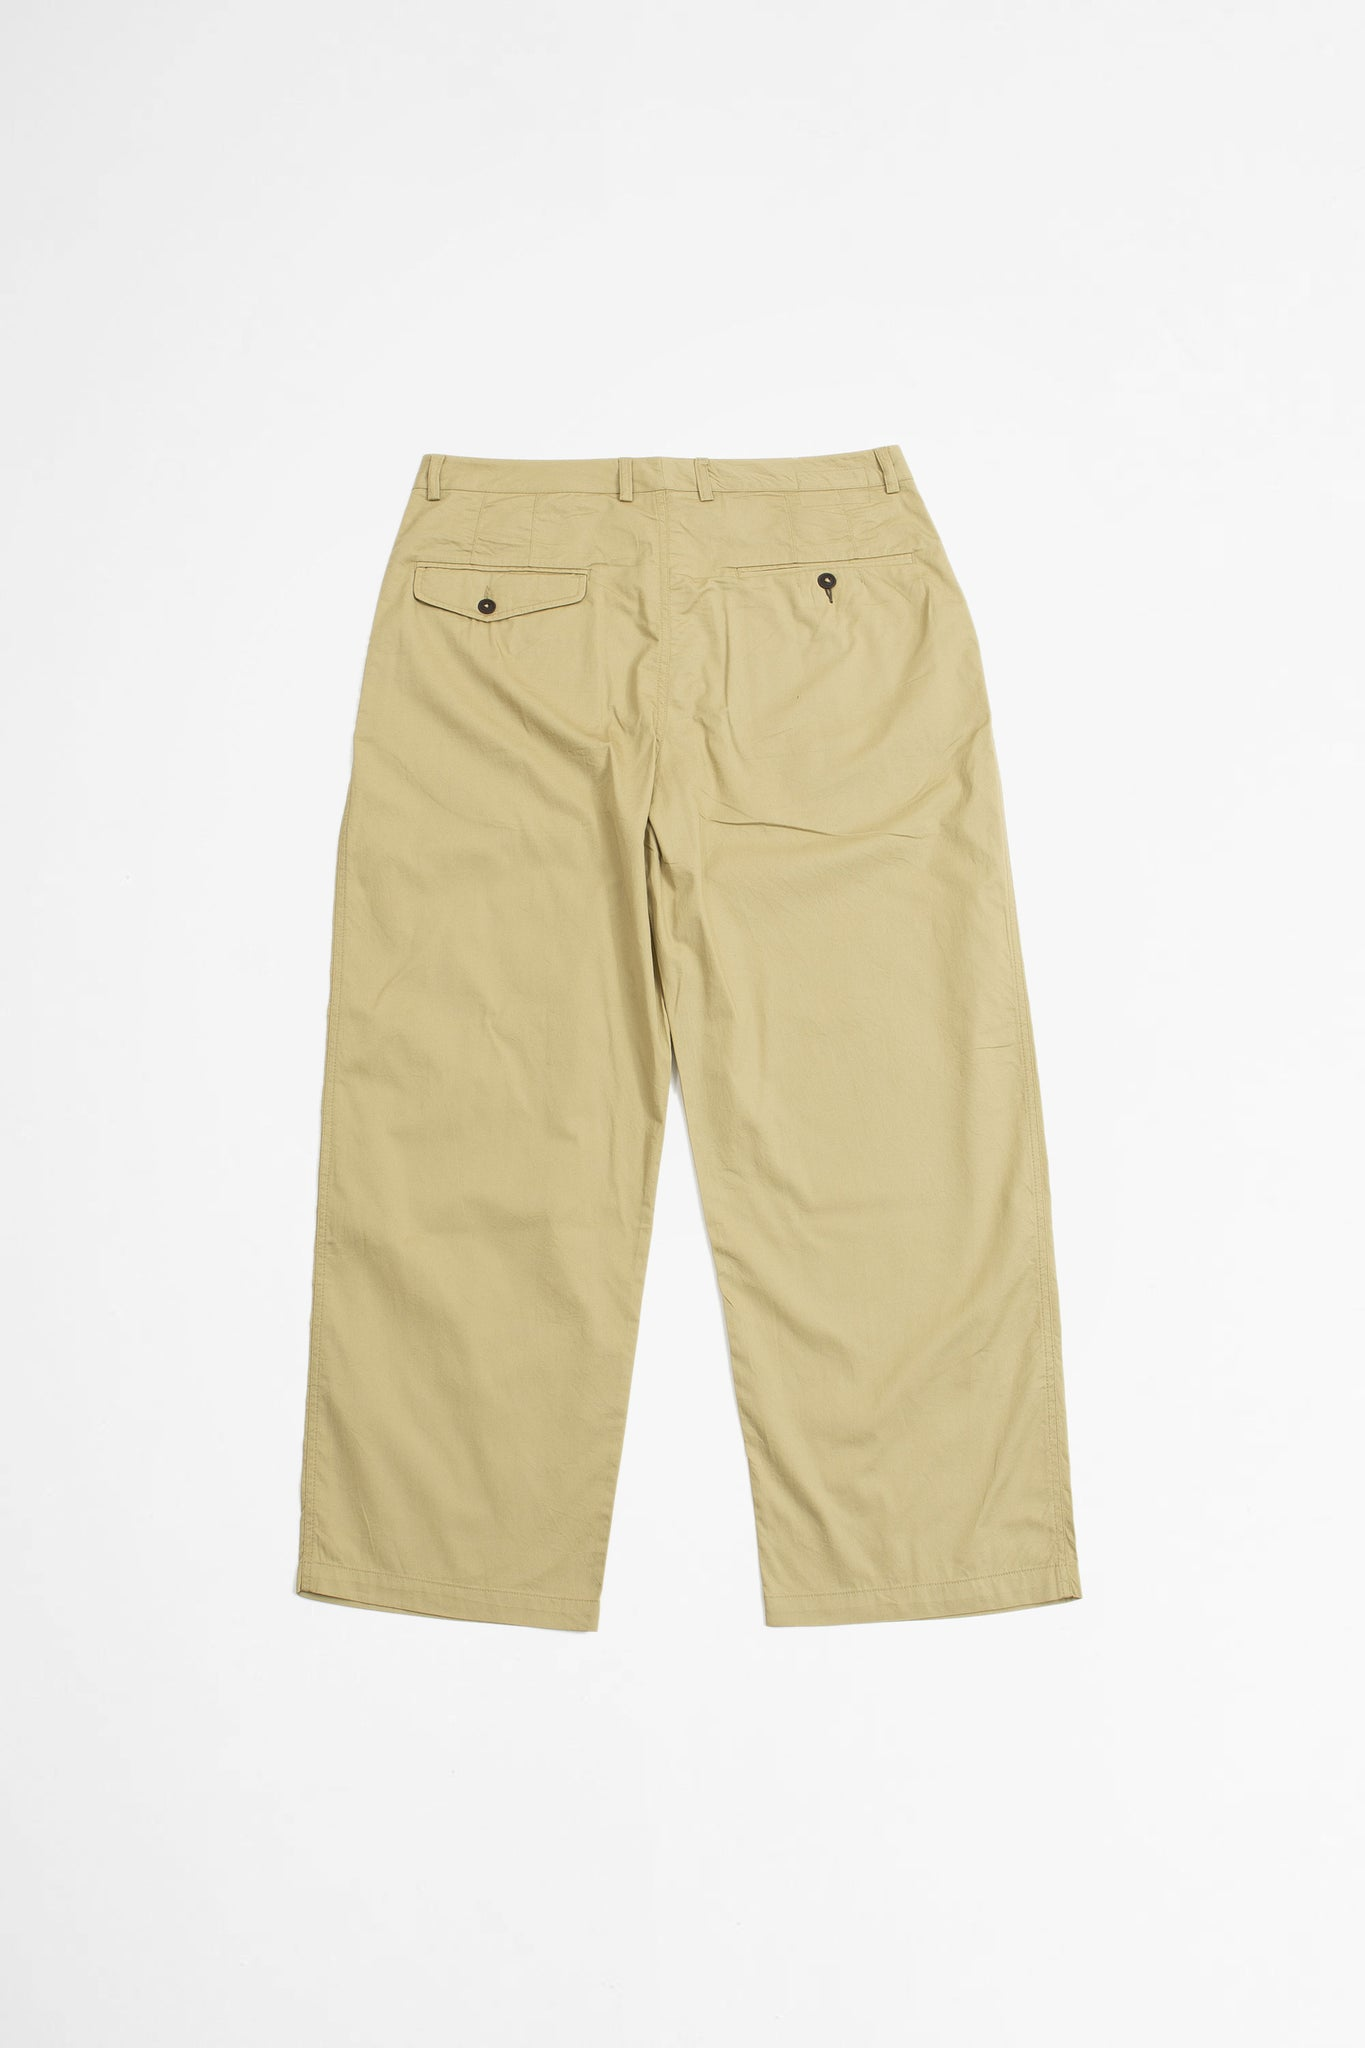 Sailor pant fine twill tan